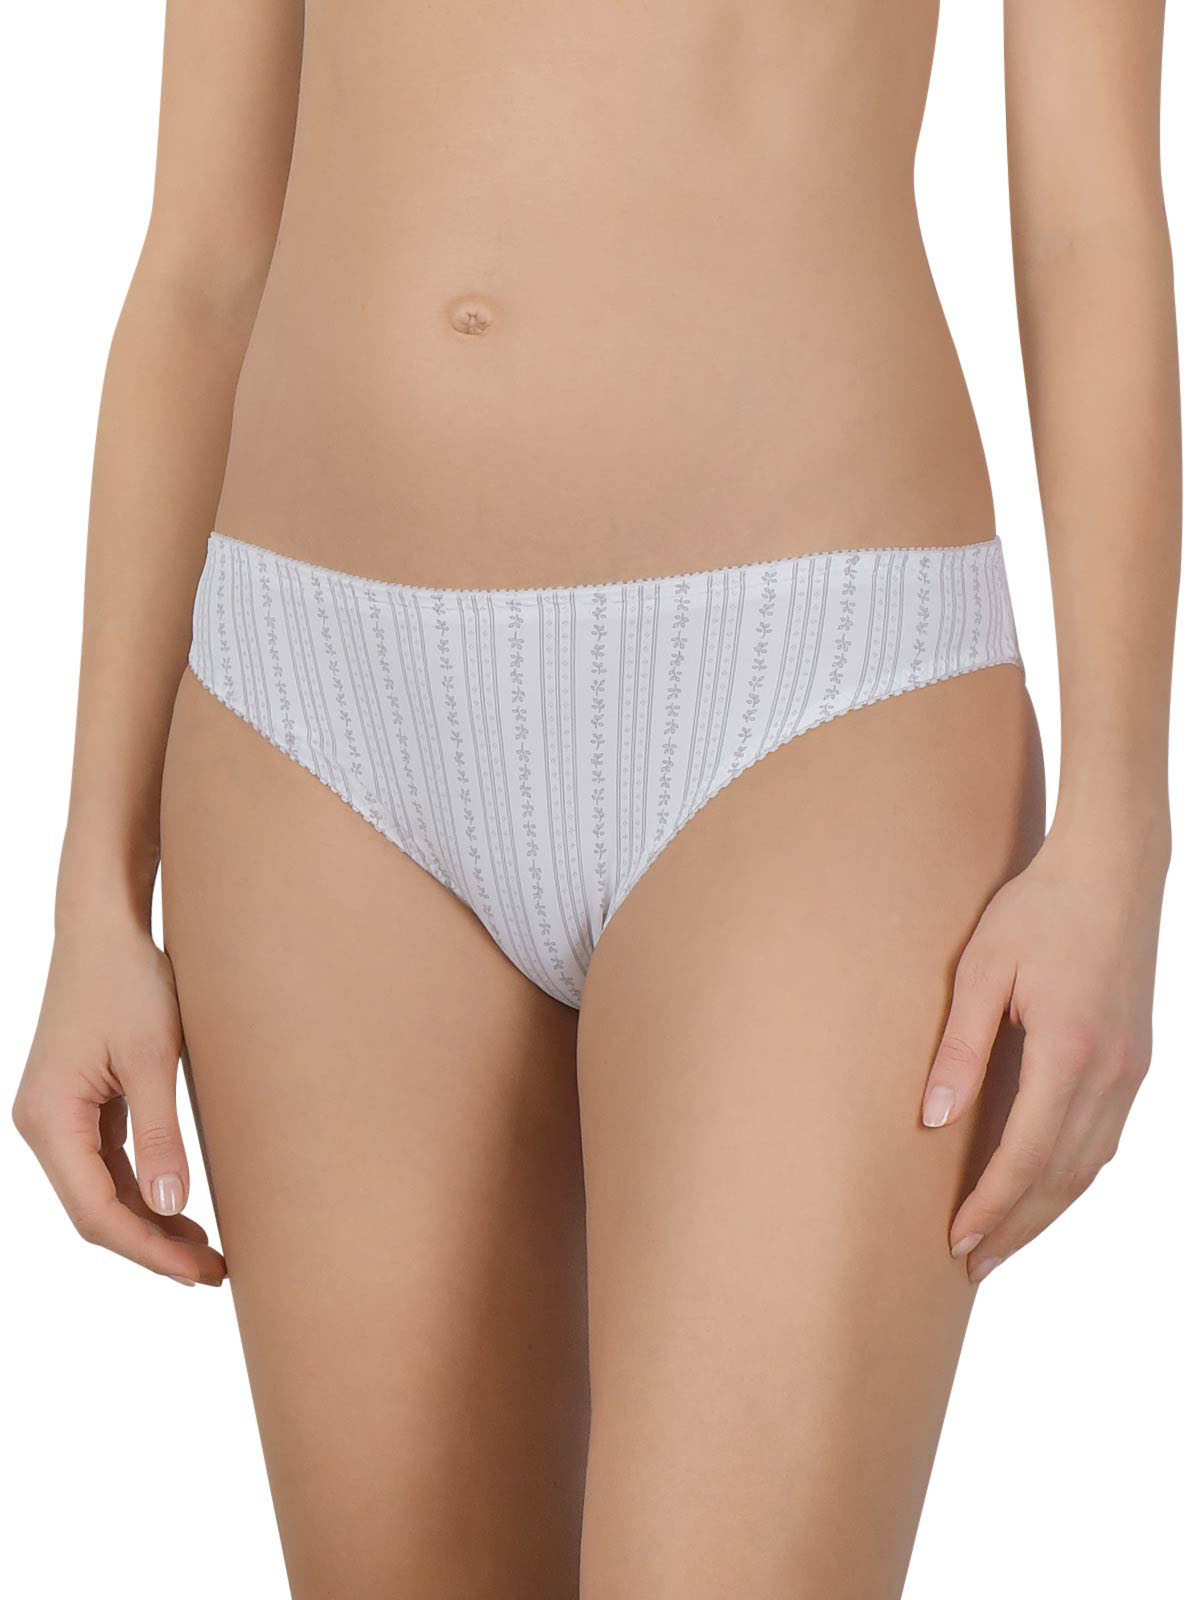 Women's Brief 94112